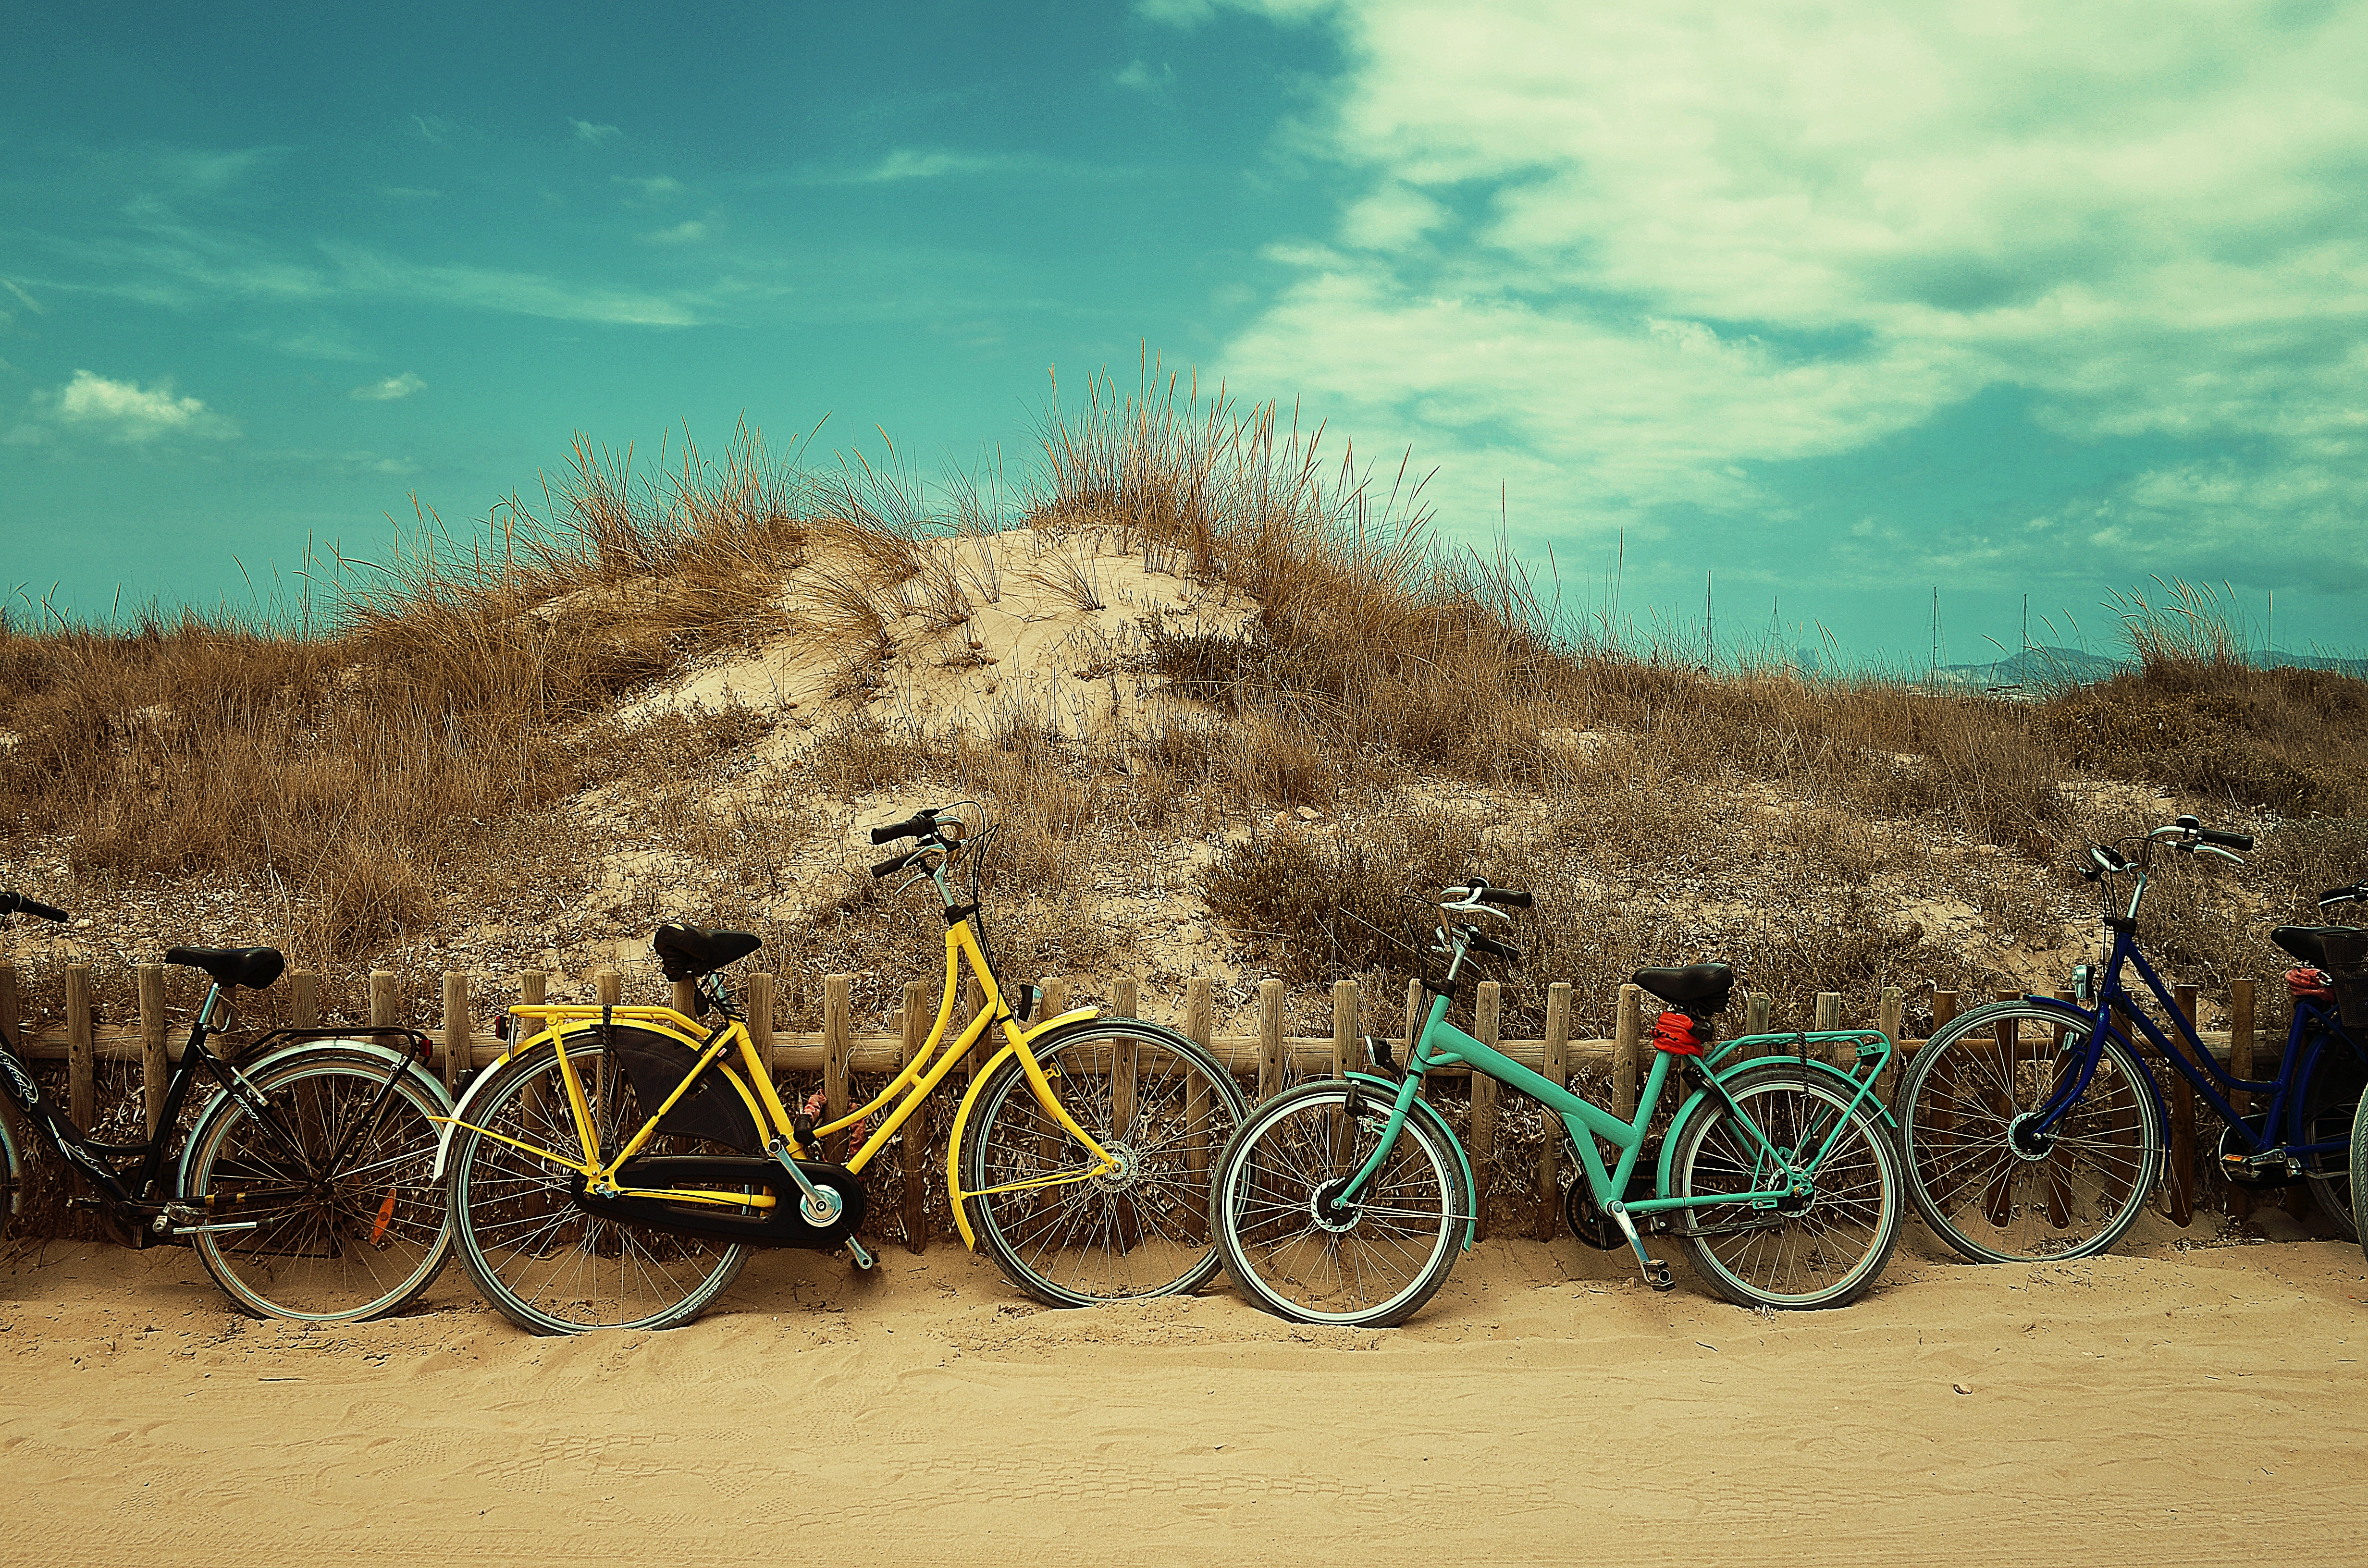 Colorful bicycles leaned on a wooden fence at the Formentera beach